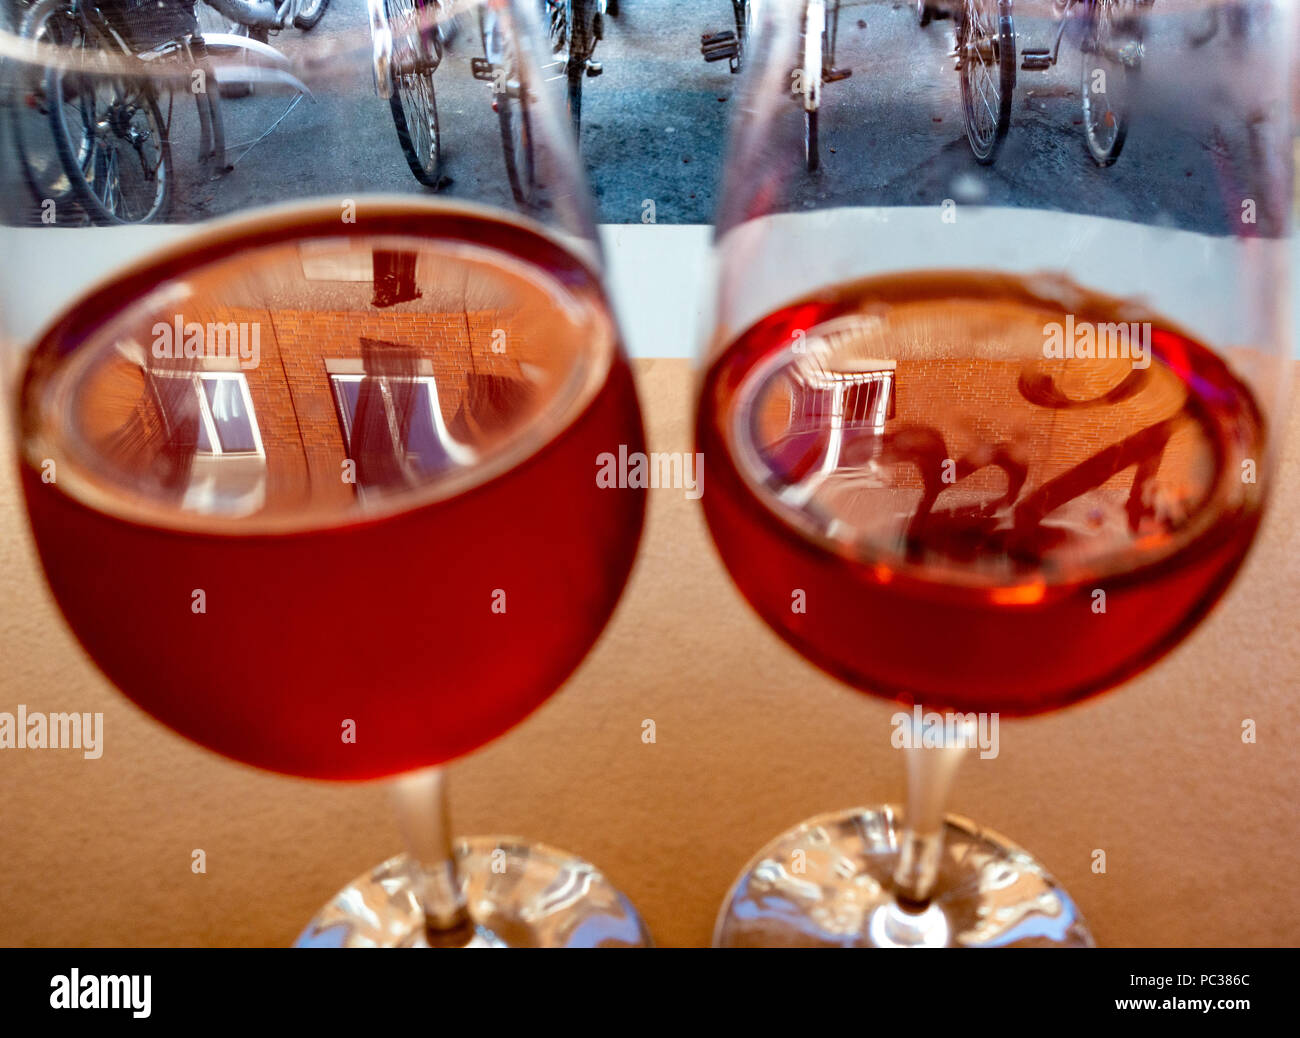 Reflections from windows in rose wine in glasses, bicycles in background - Stock Image